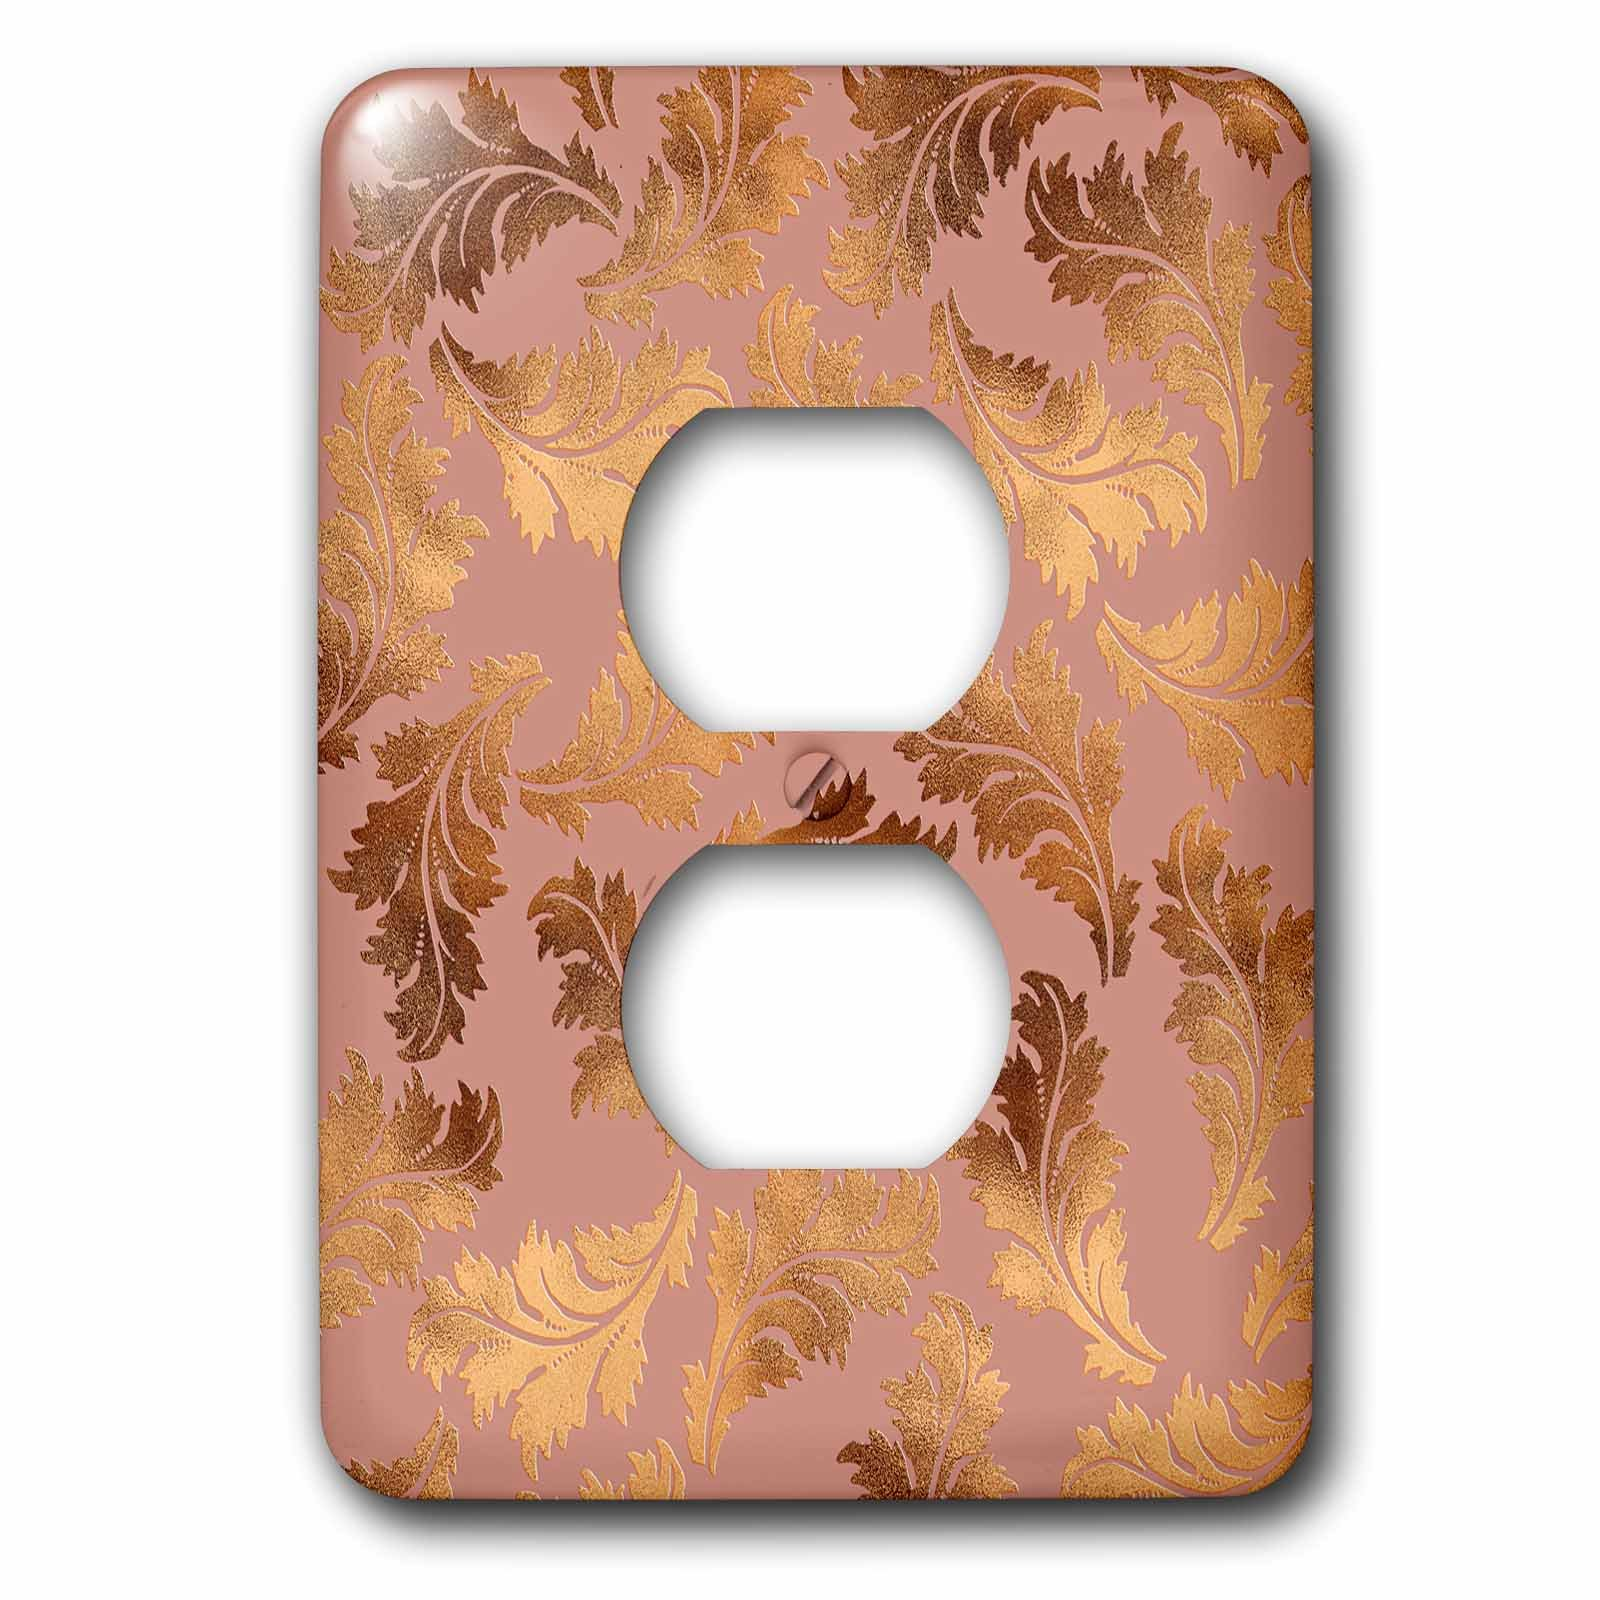 3dRose Uta Naumann Faux Glitter Pattern - Luxury Shiny Elegant Rose Gold Floral Foliage Copper Damask Pattern - Light Switch Covers - 2 plug outlet cover (lsp_272878_6)